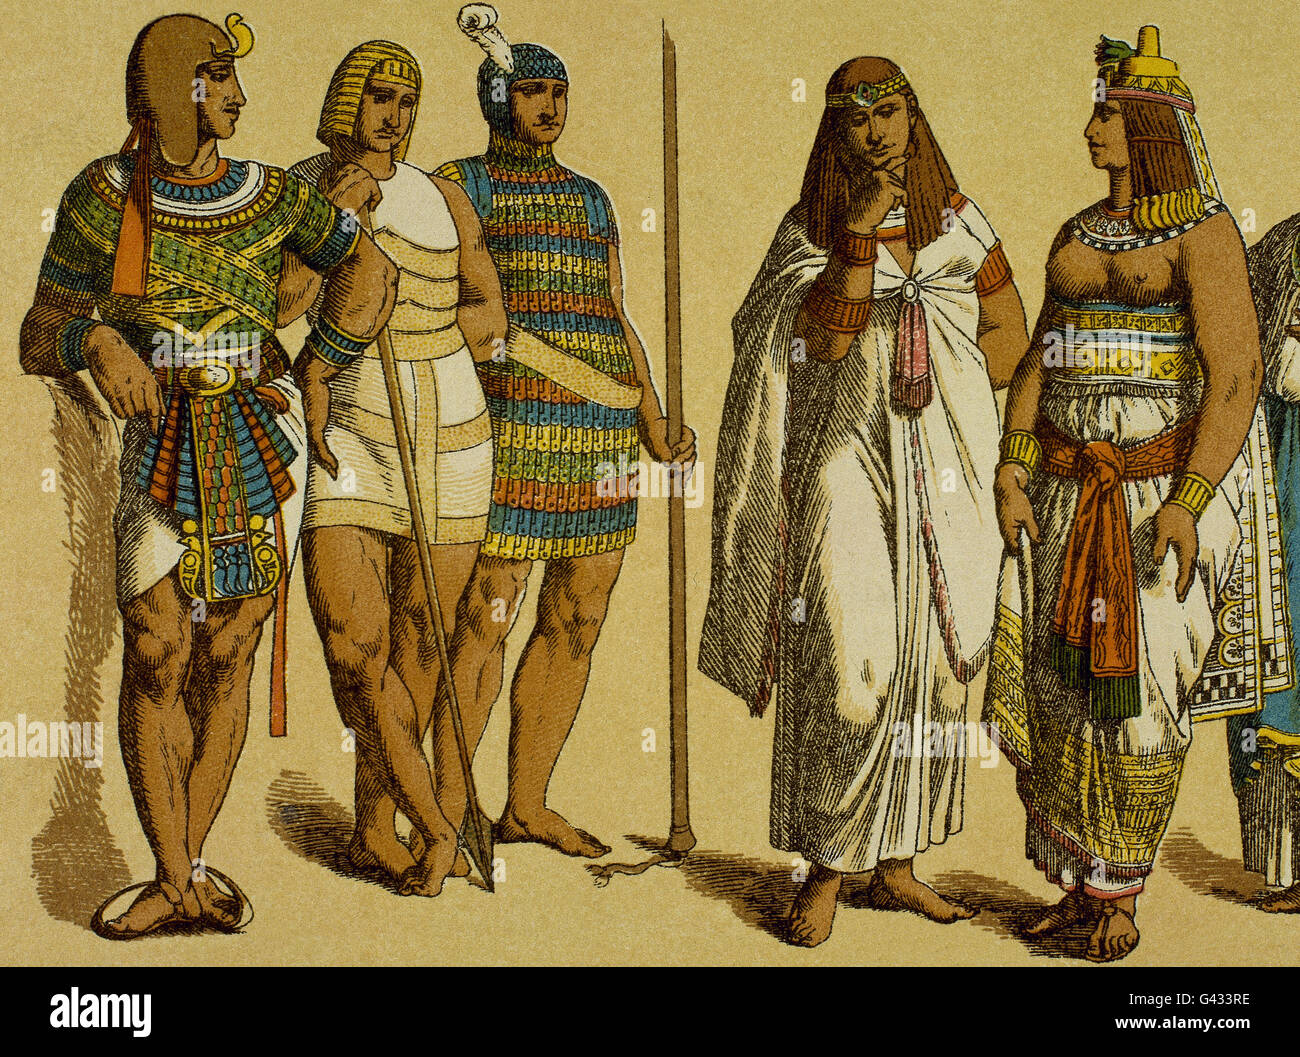 Egypt. Pharaoh with war clothing surrounded by aristocratic women. - Stock Image